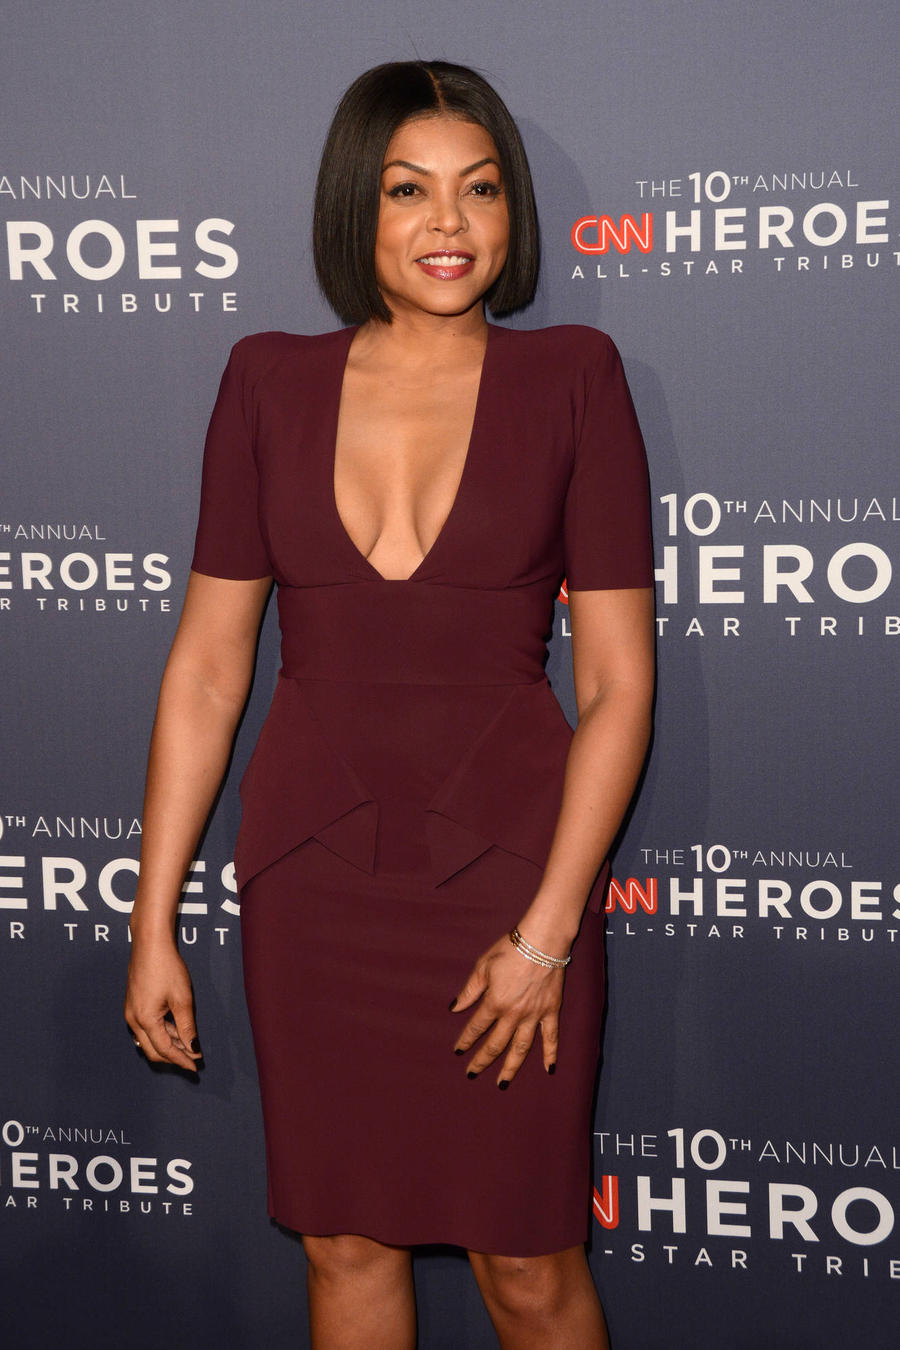 Taraji P. Henson Brought 'A' Game For Hidden Figures Scenes With Kevin Costner